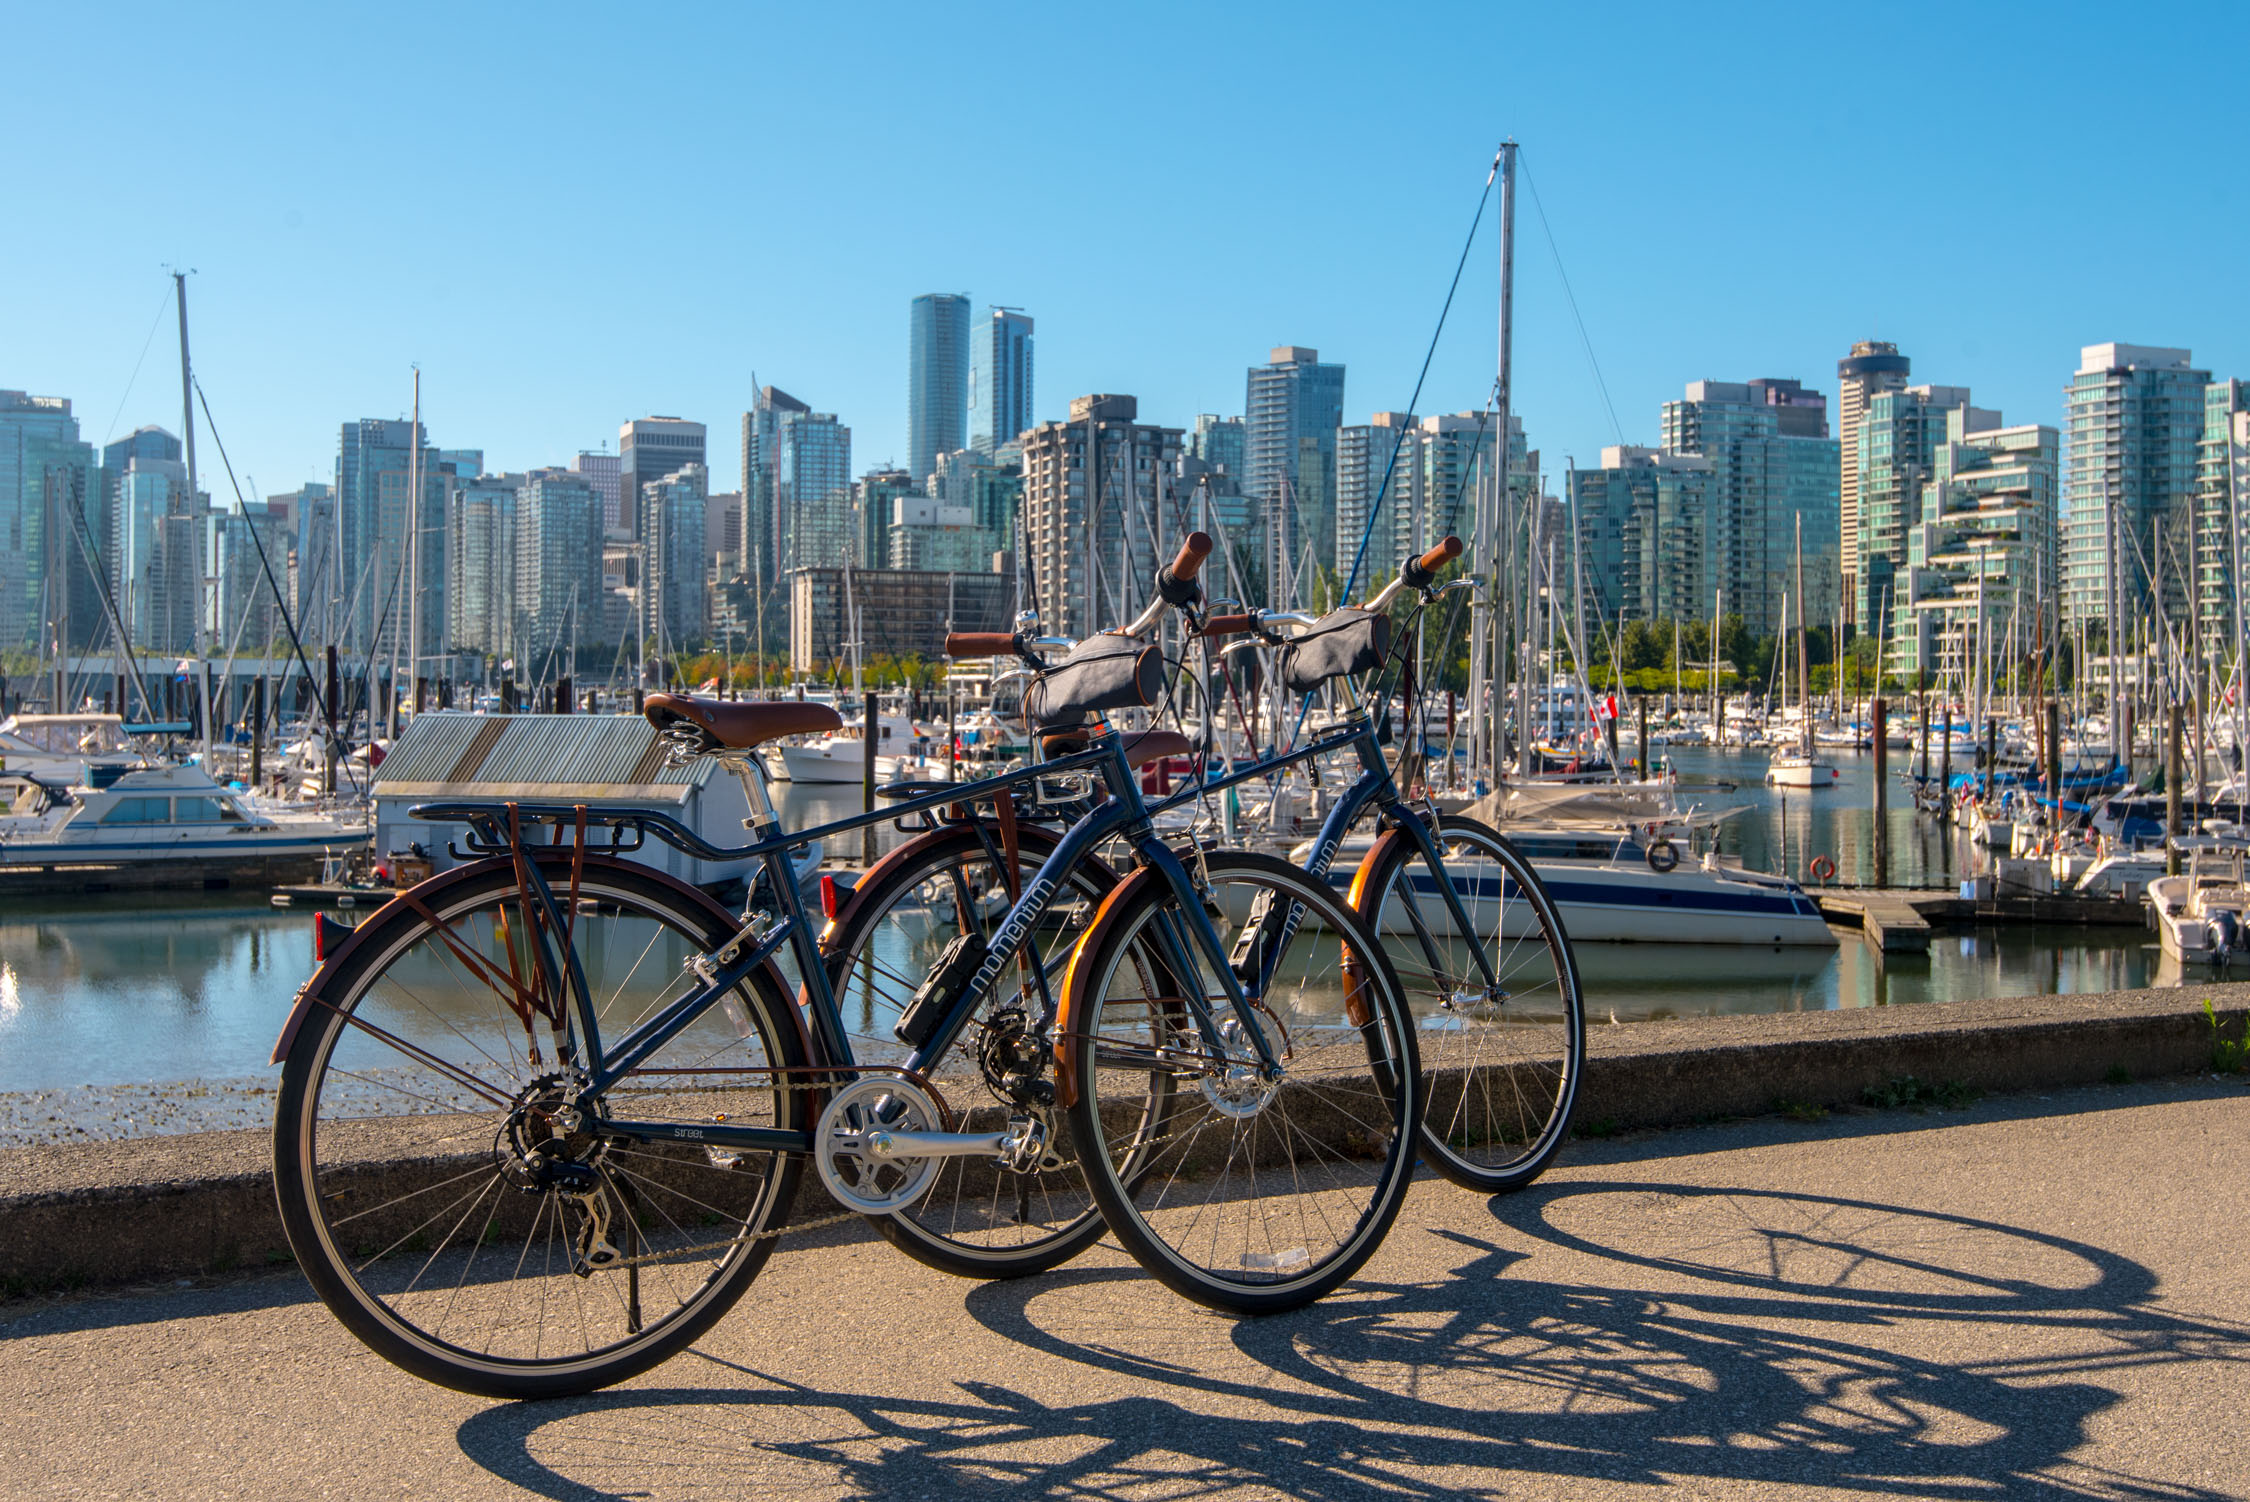 Bike rentals from The Westin Bayshore, Vancouver - perfect for riding around the city